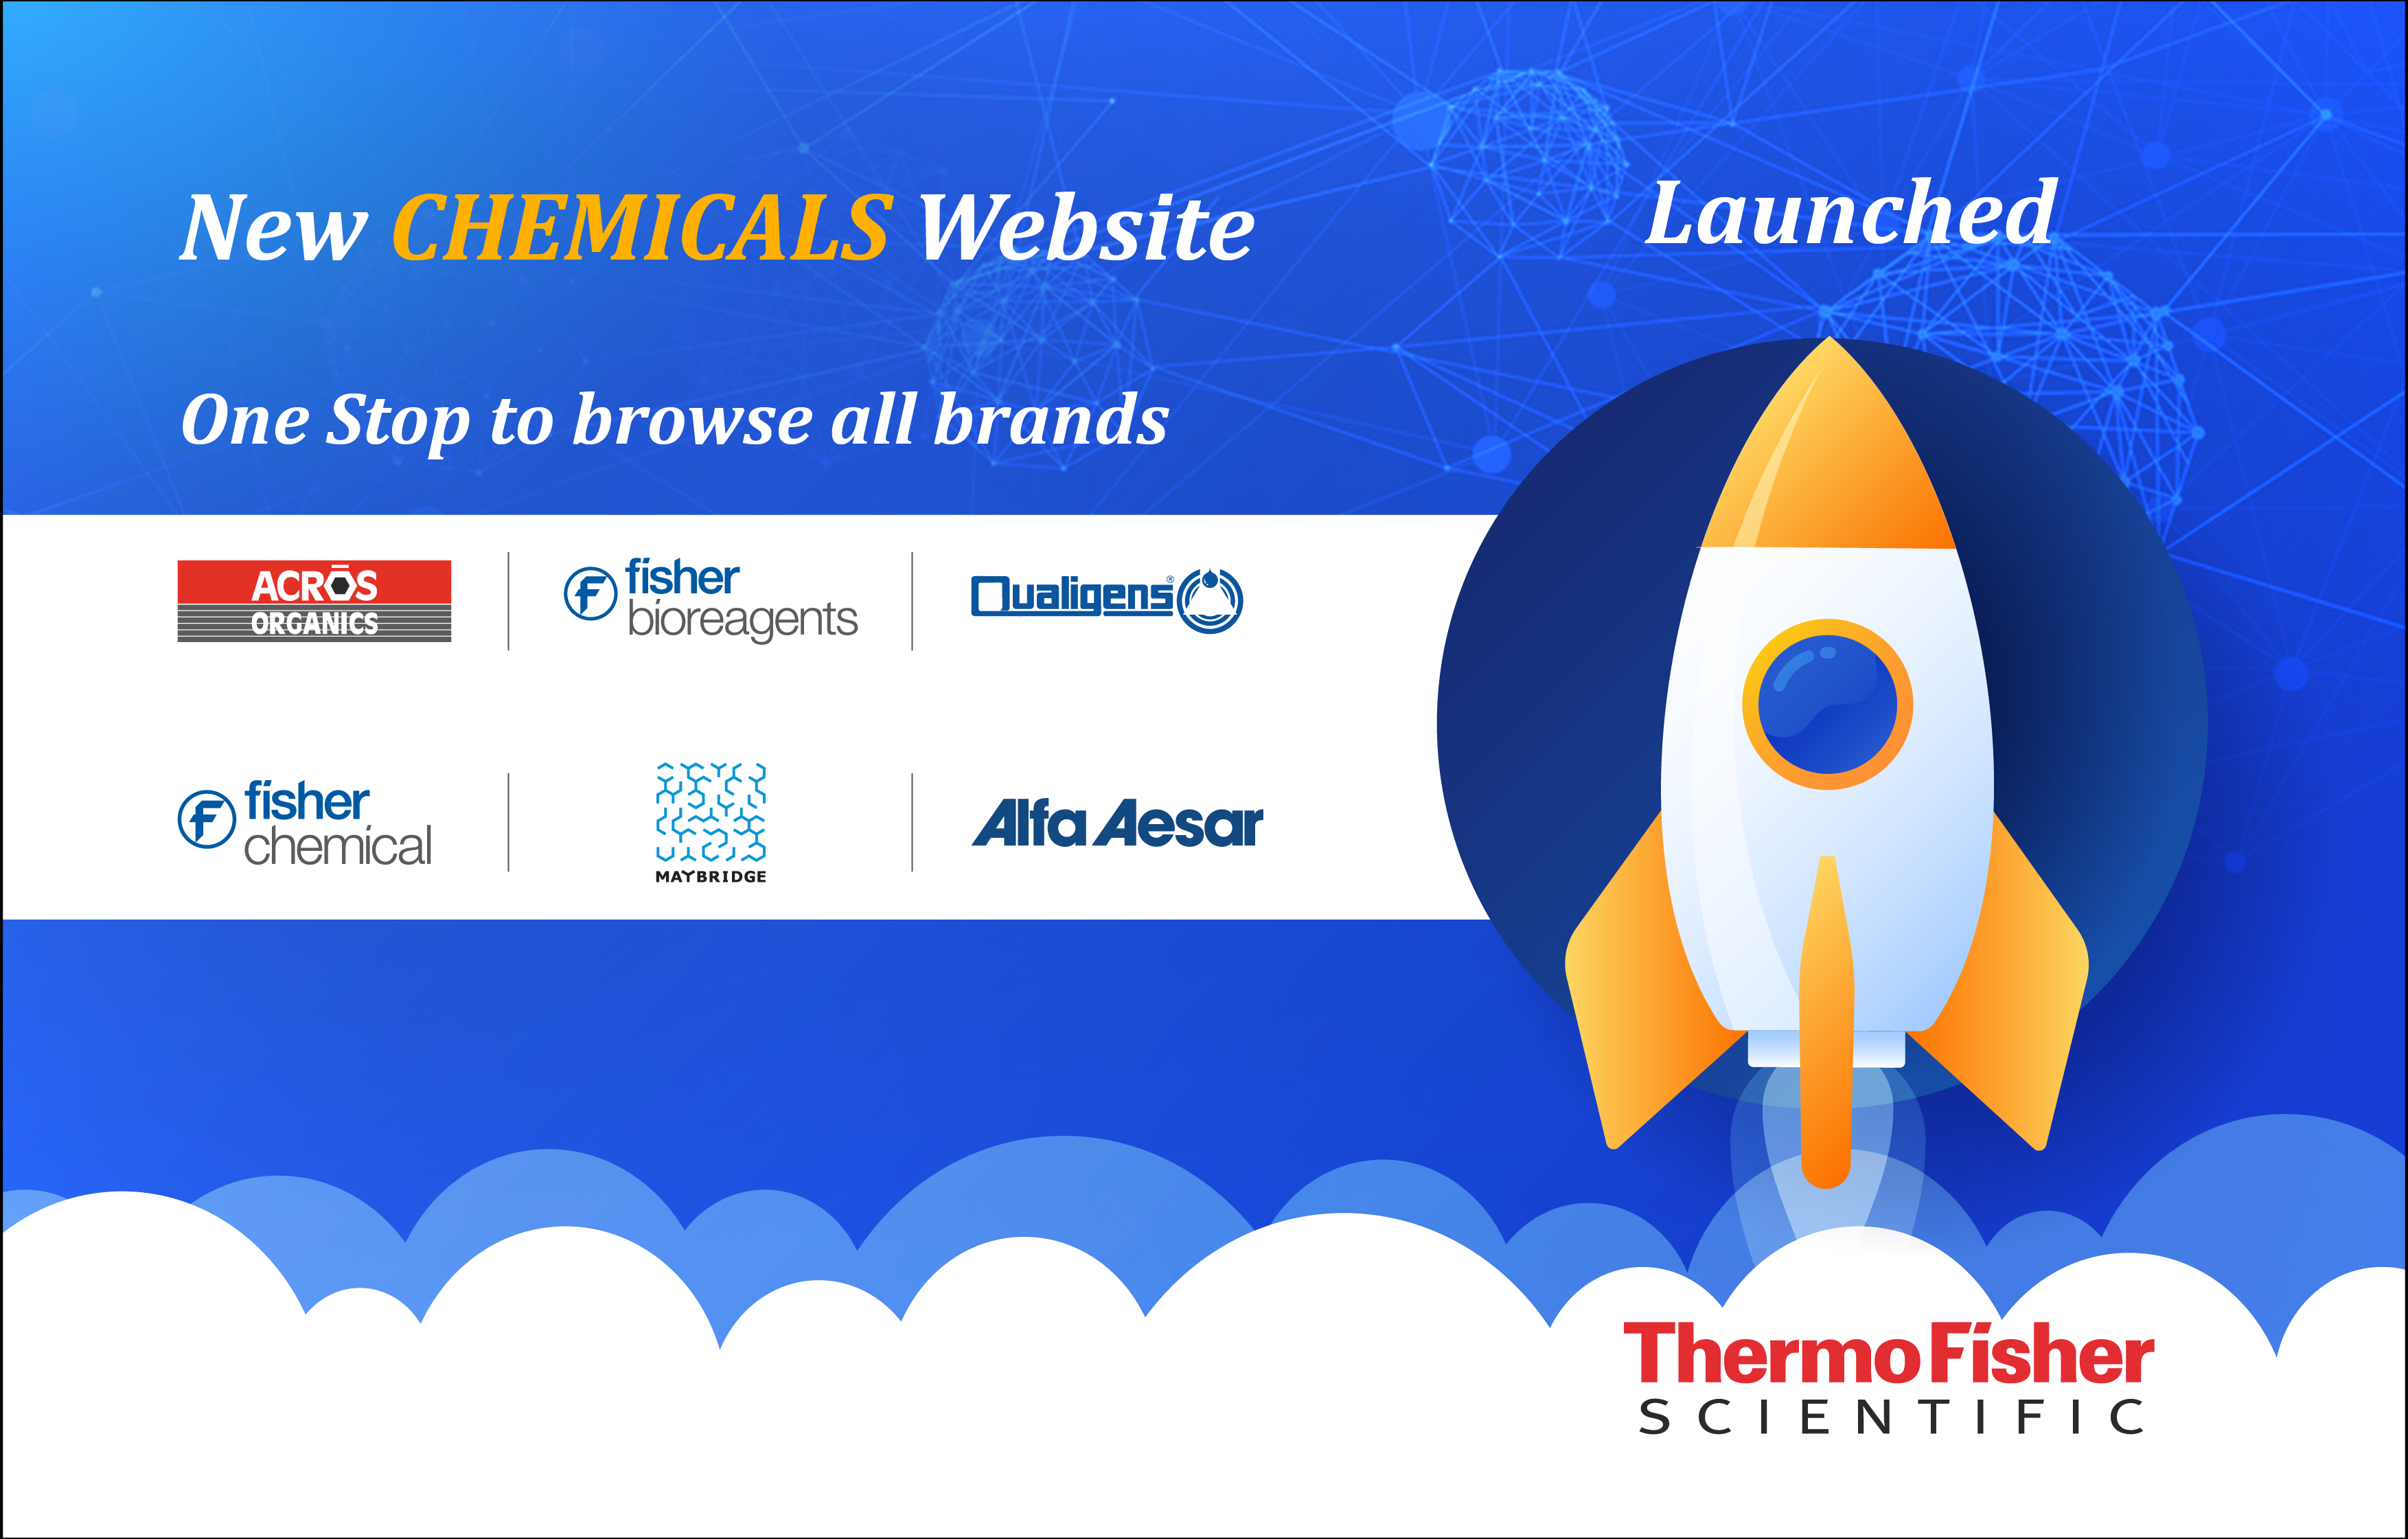 Thermo Fisher Scientific Launches Exclusive Website for its Chemical Business Offerings in India